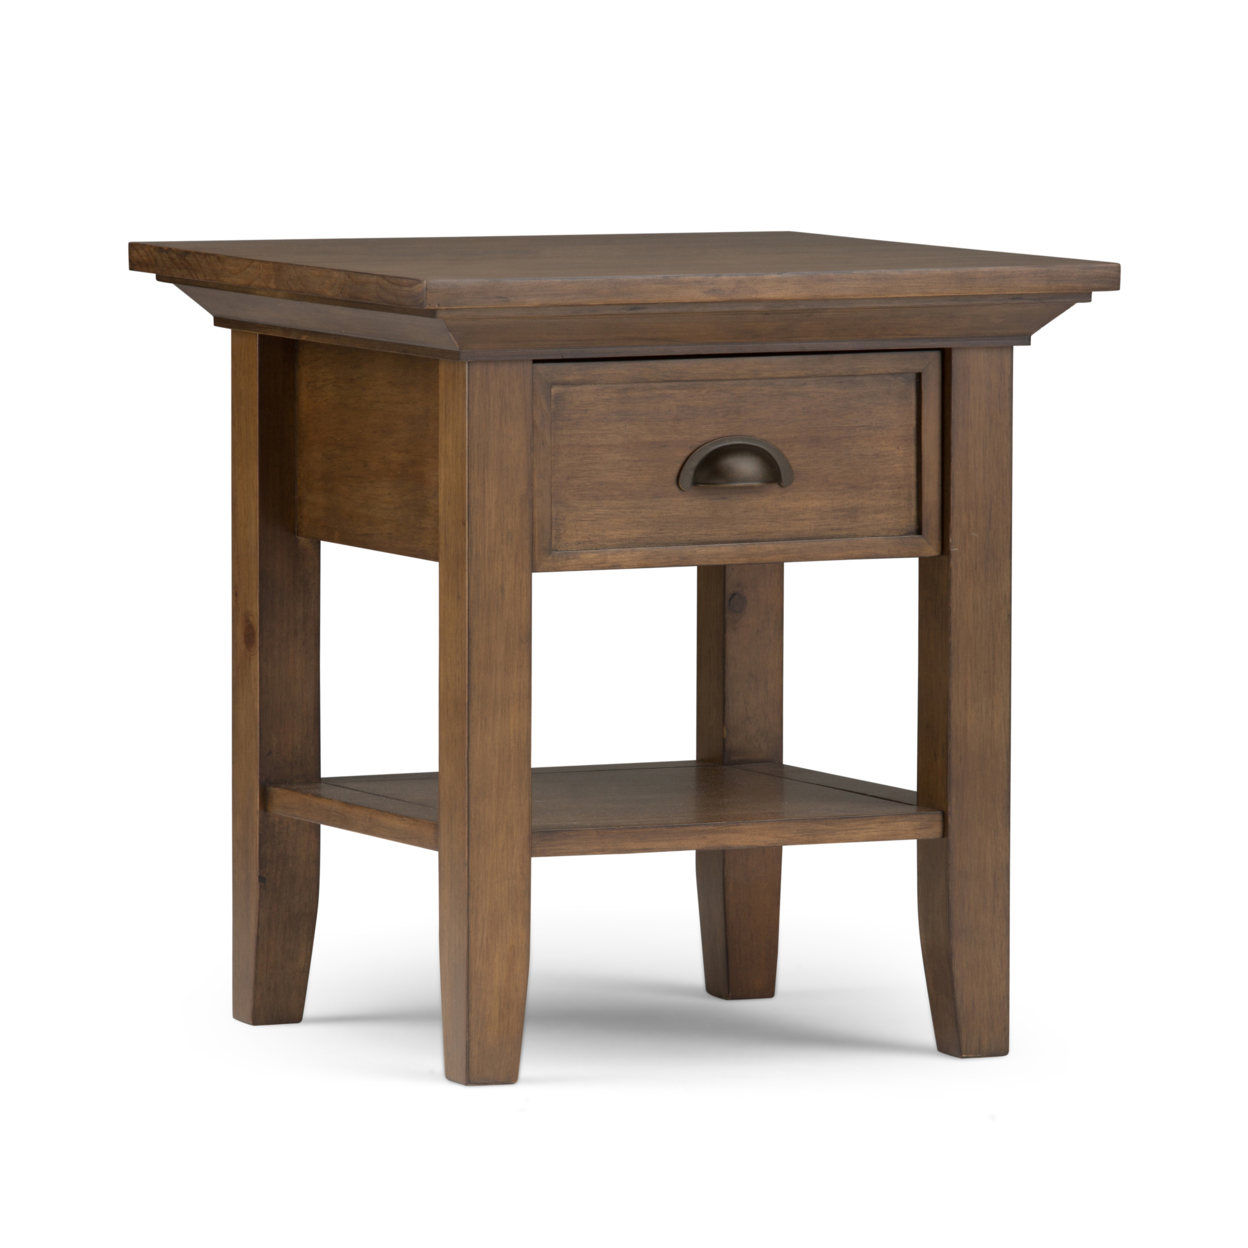 Redmond Solid Wood End Table in Rustic Natural Aged Brown паркетная доска baltic wood дуб rustic light brown 2200x182x14 мм